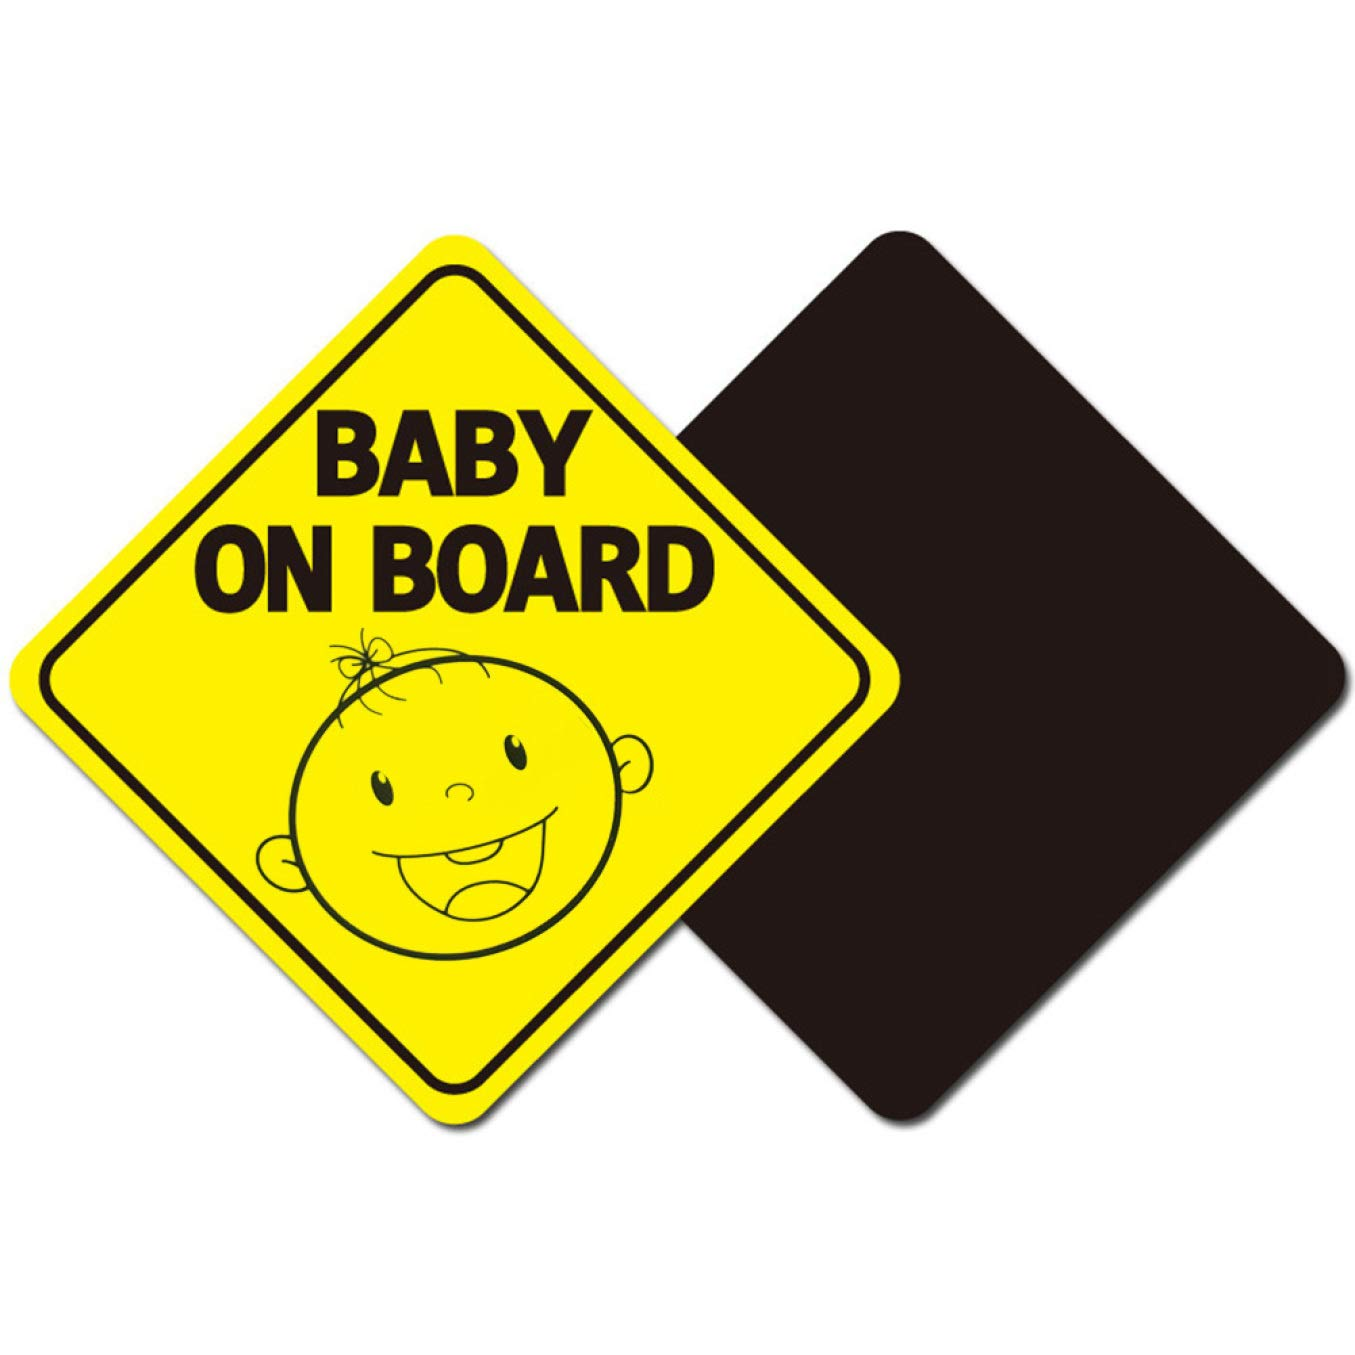 None H01 guangxichuangshengxinfu Significant Baby On Board Sign Magnet for Car Magnetic and Reflective Safety Cute Design 2 Pack by